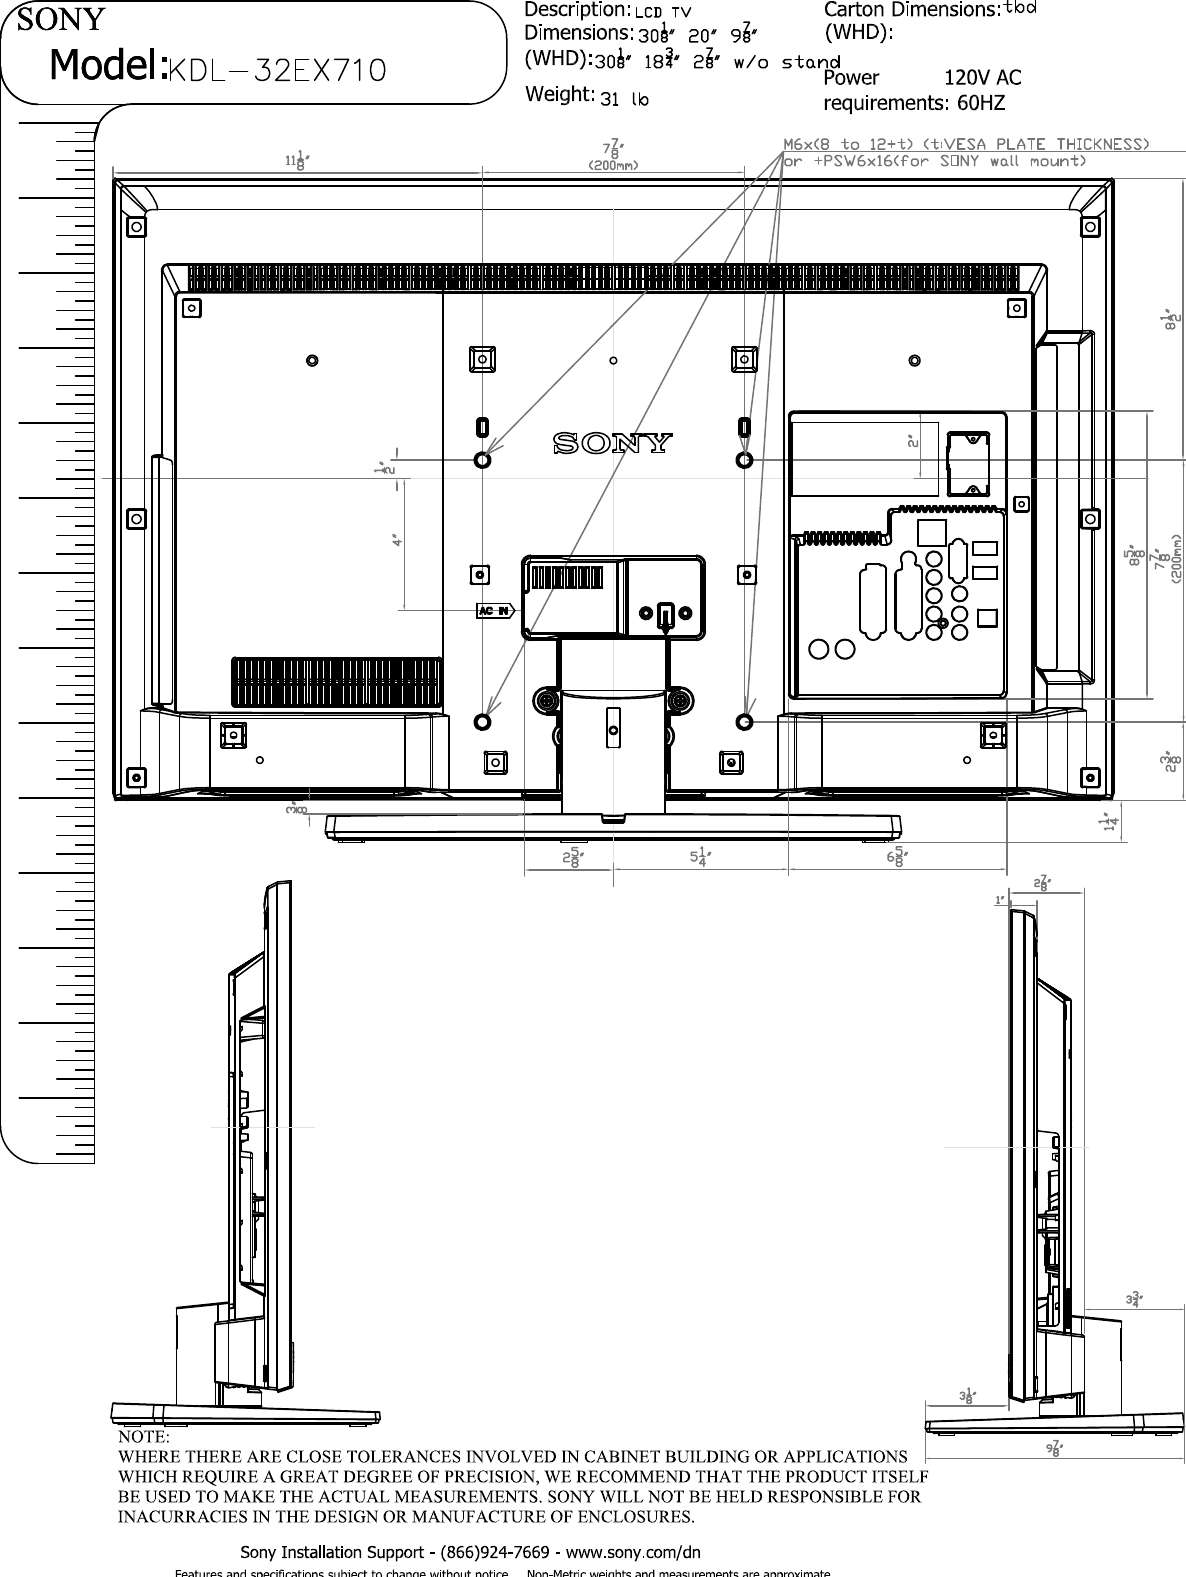 Sony KDL 32EX710 Layout1 User Manual Dimensions Diagram